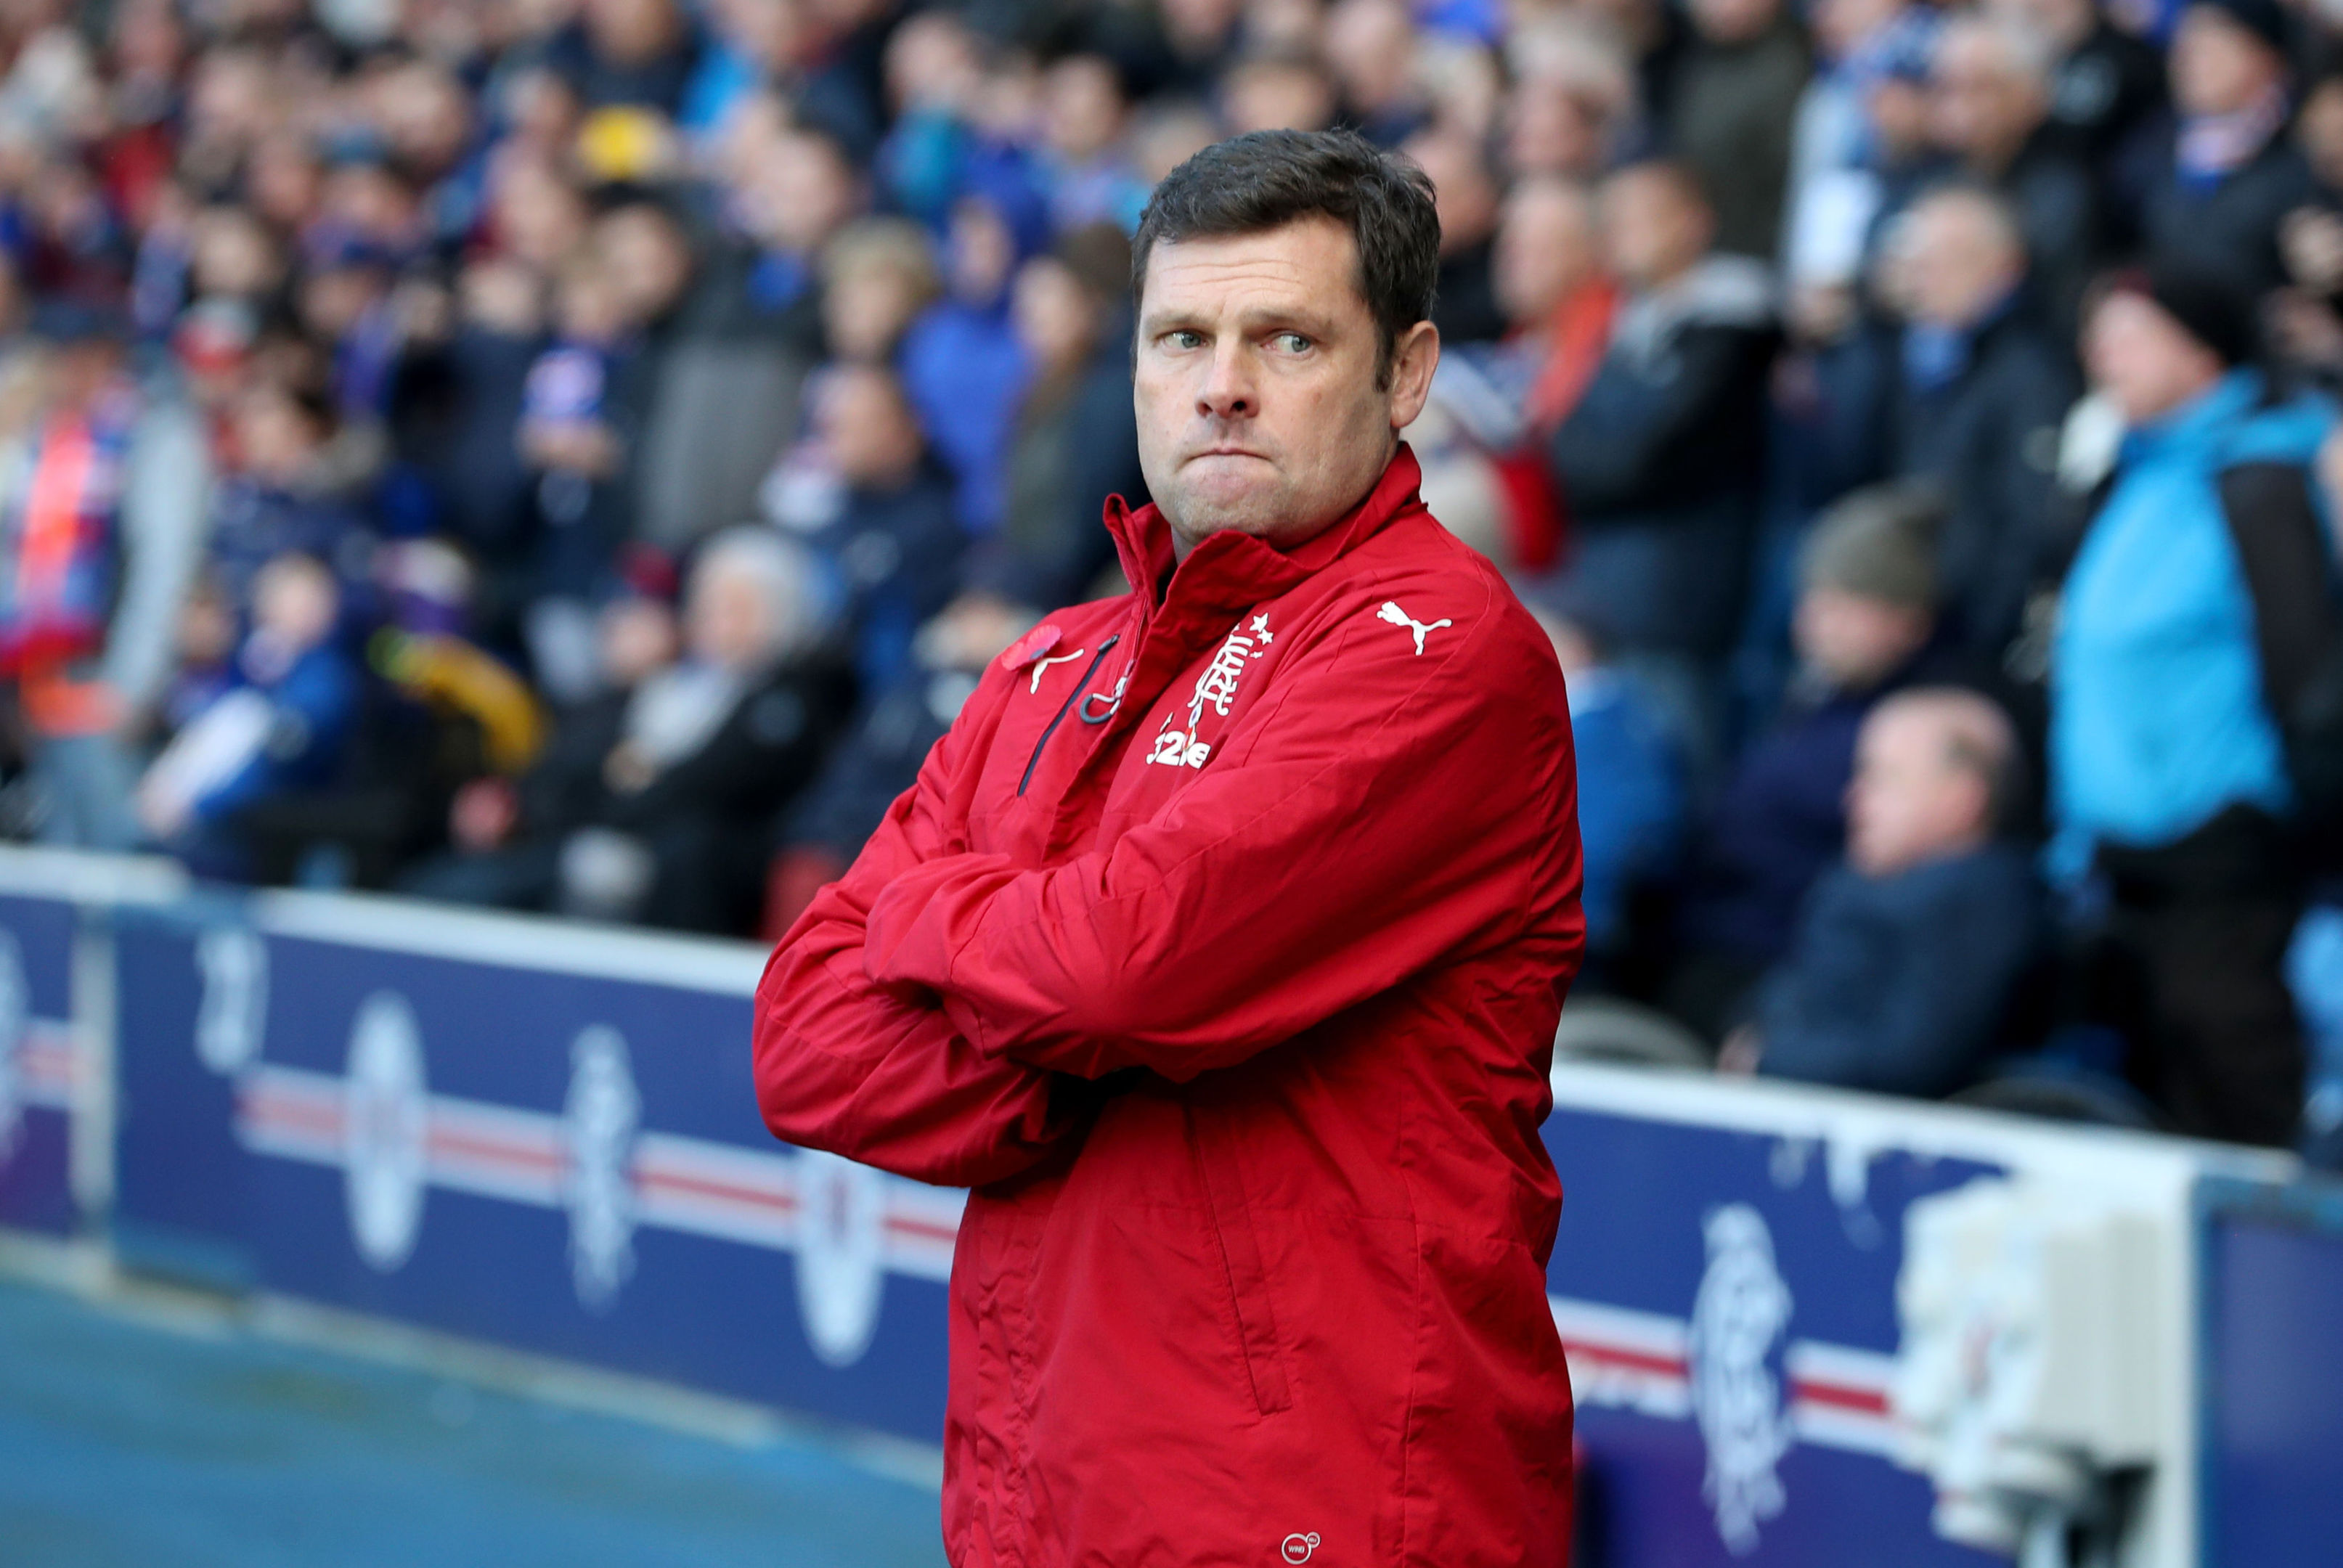 Rangers' interim manager Graeme Murty during the Ladbrokes Scottish Premiership match at the Ibrox Stadium, Glasgow. (Jane Barlow/PA Wire).